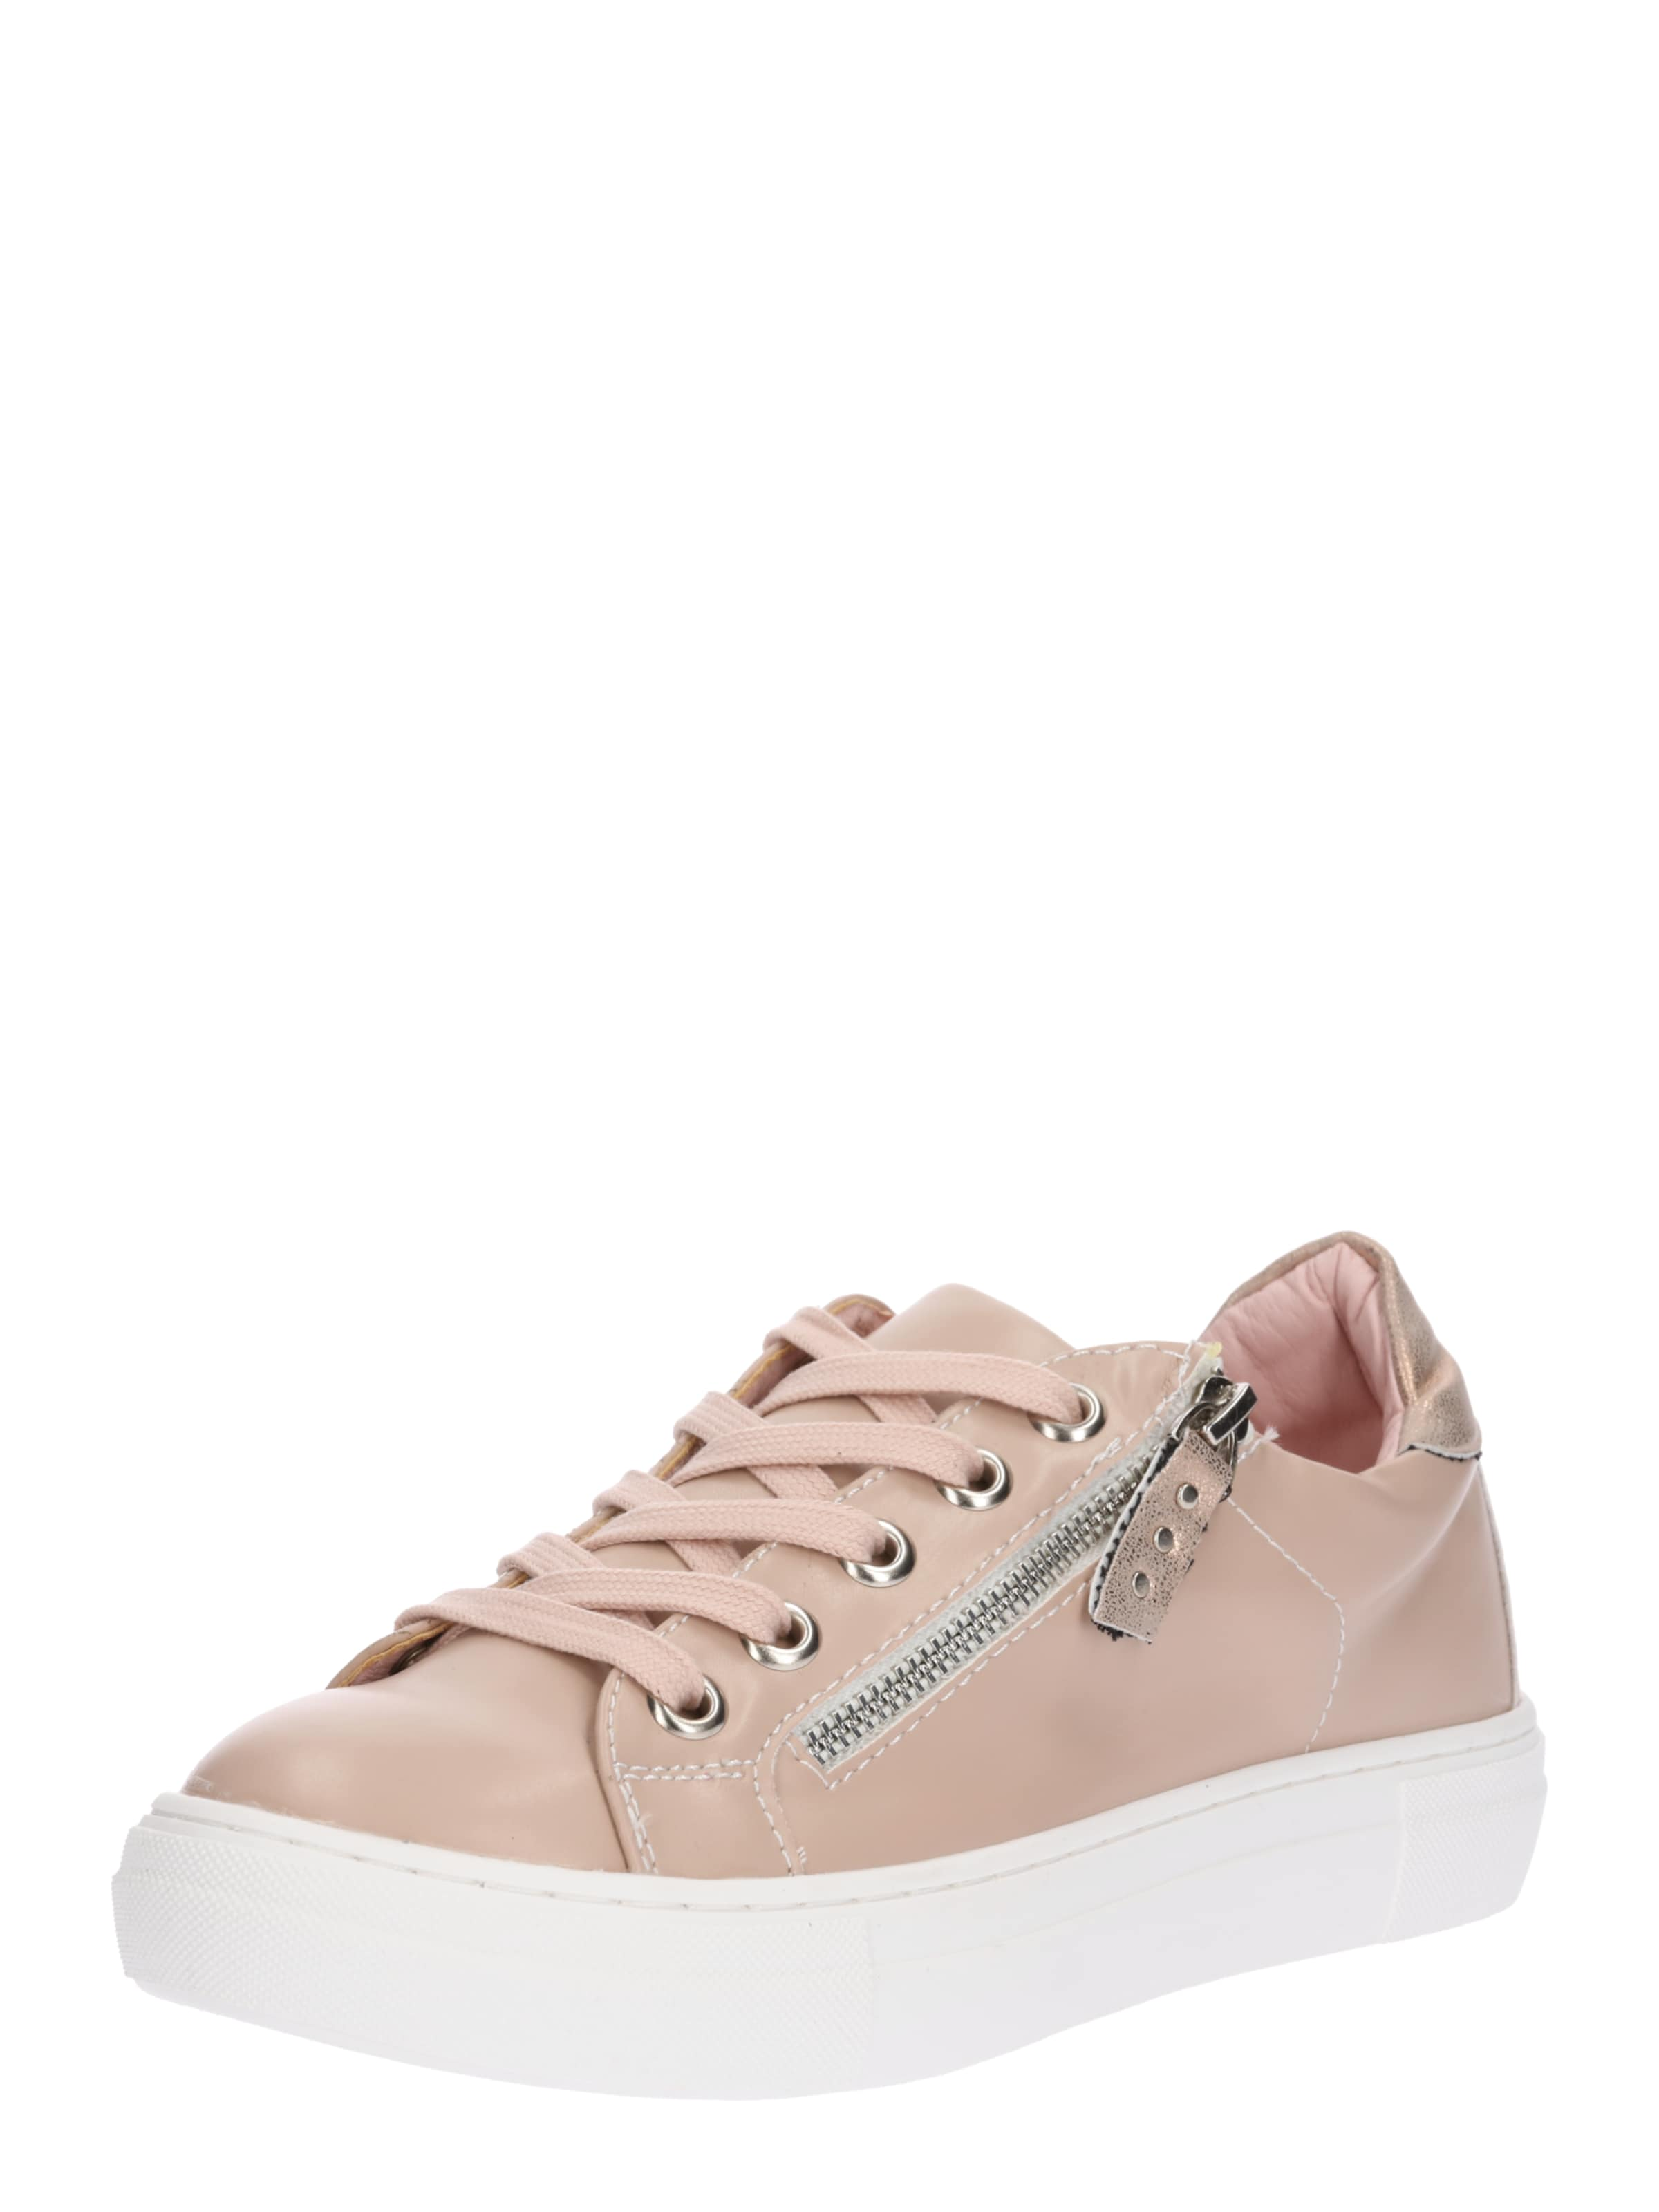 Low Nude 'olivia' About You Sneaker In 1JcKlF